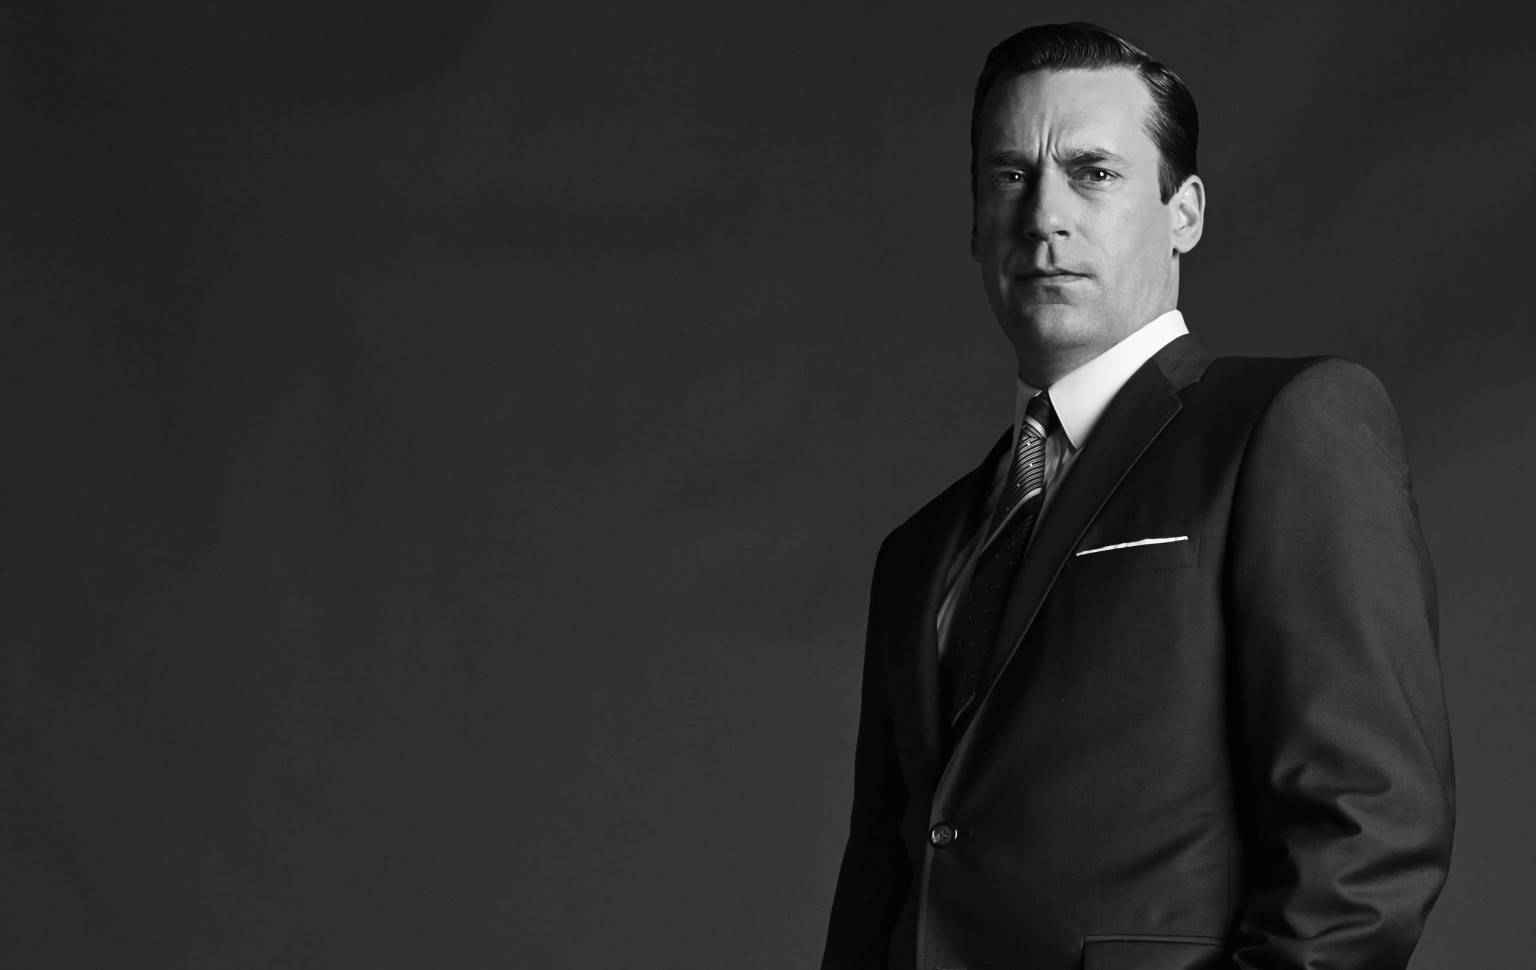 Don Draper Window : Mad men ending series won t close with anybody jumping